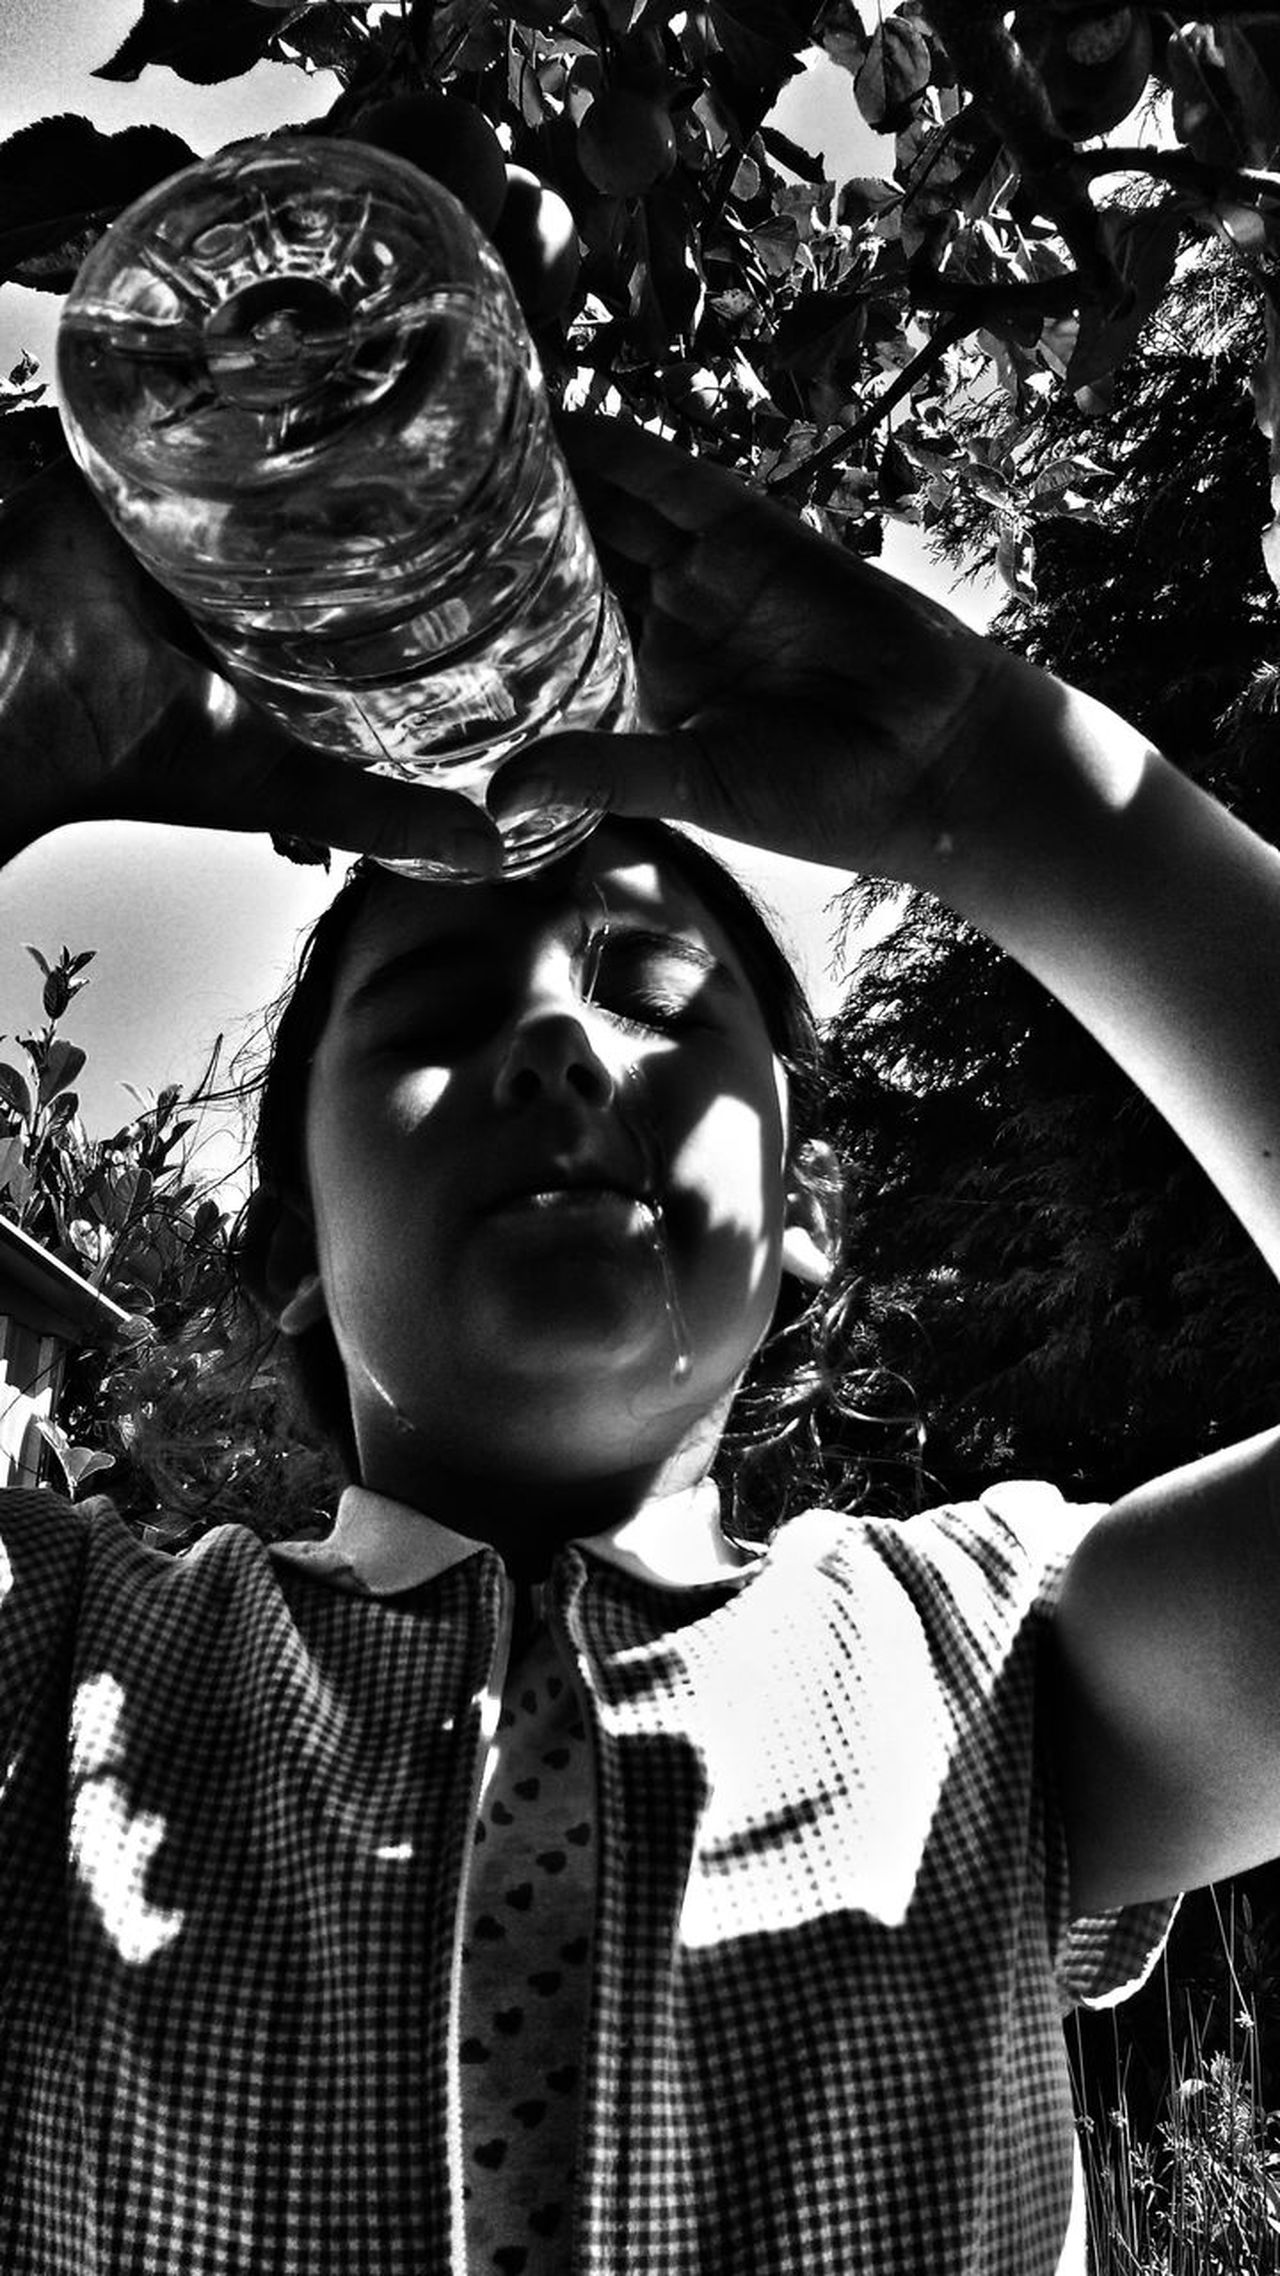 Girl pouring/refreshing face with water. Face Faces Of Summer One Girl Only Child Childhood Real People Close-up Summer Bottle Closeup Black And White Photography Monochrome Monochromatic Expression Portrait